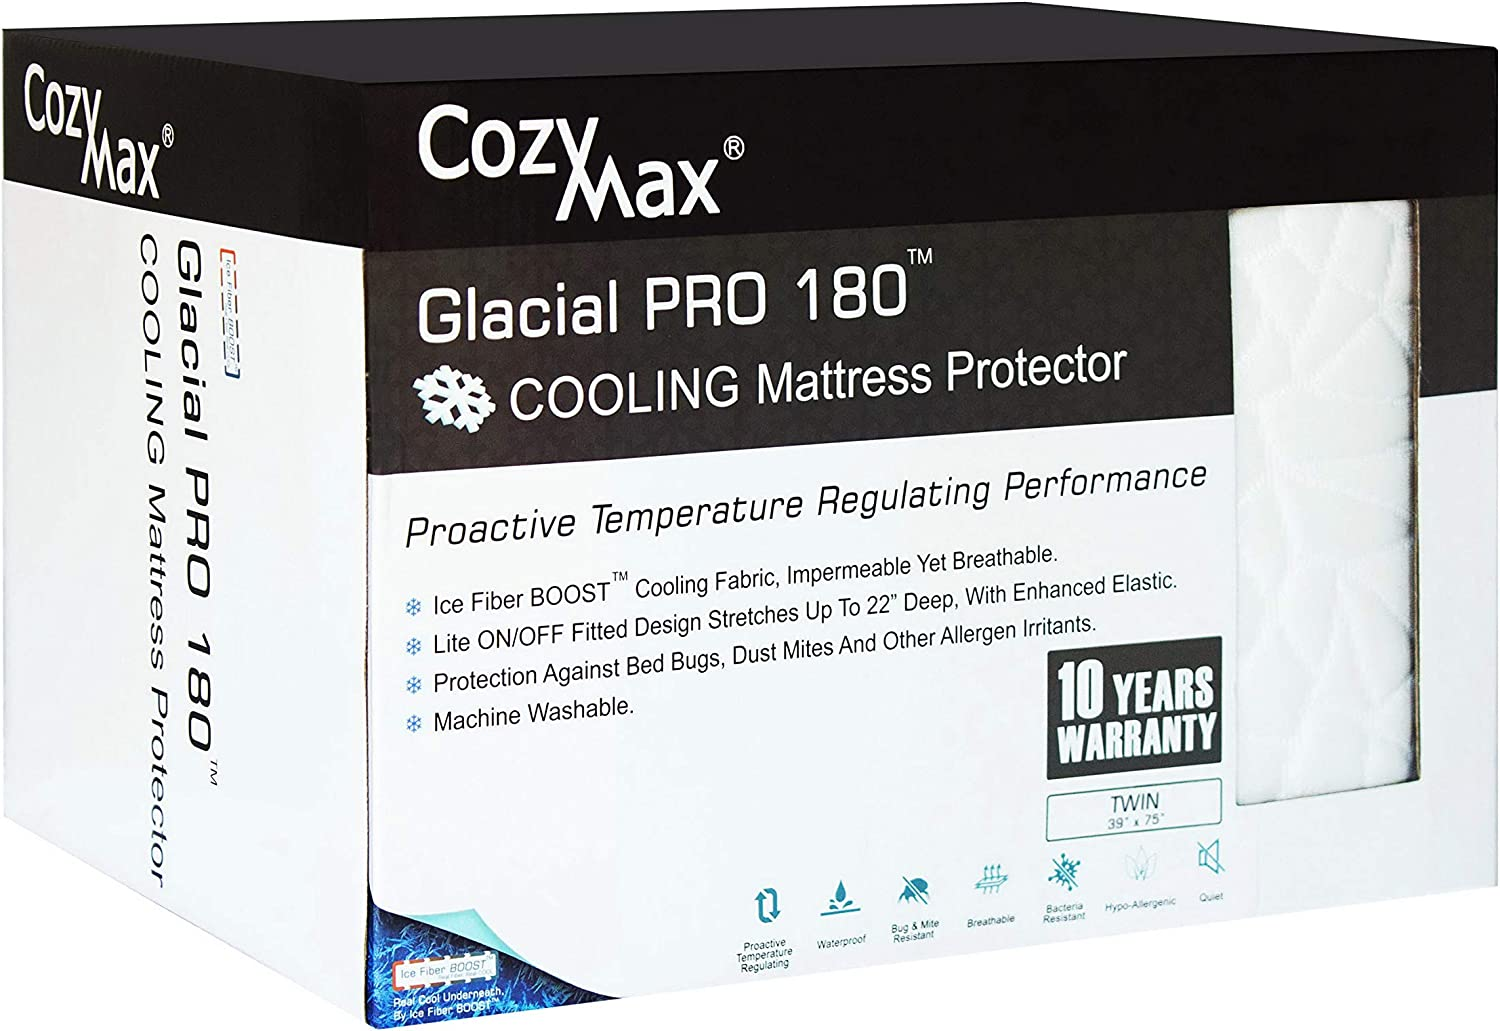 COZYMAX Glacial Pro 180 Cooling Mattress Predector-Cooling Hypoallergenic Waterproof Breathable Vinyl Free (Twin)